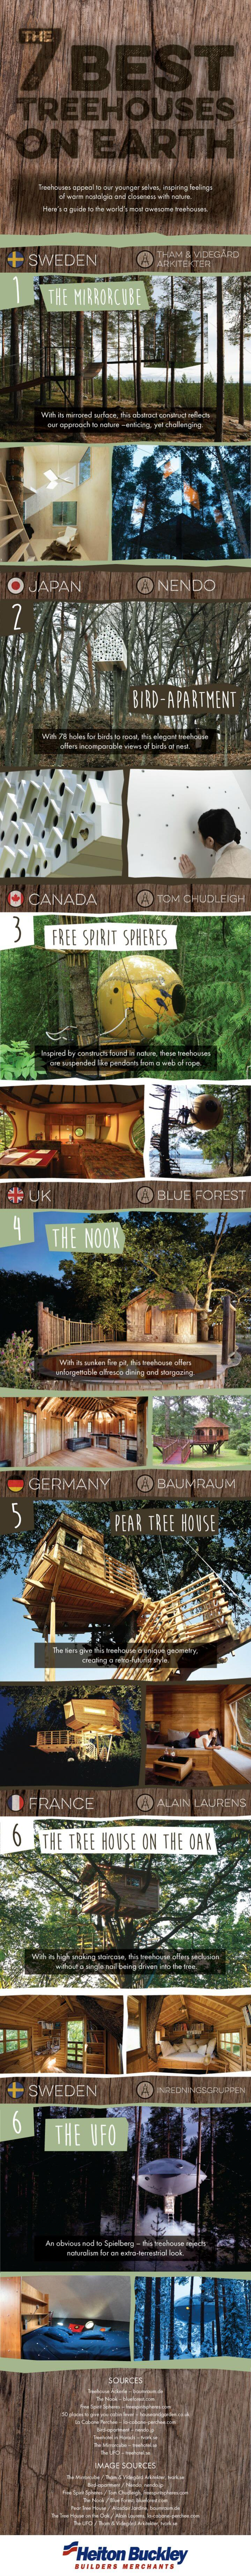 The 7 Best Tree Houses on Earth